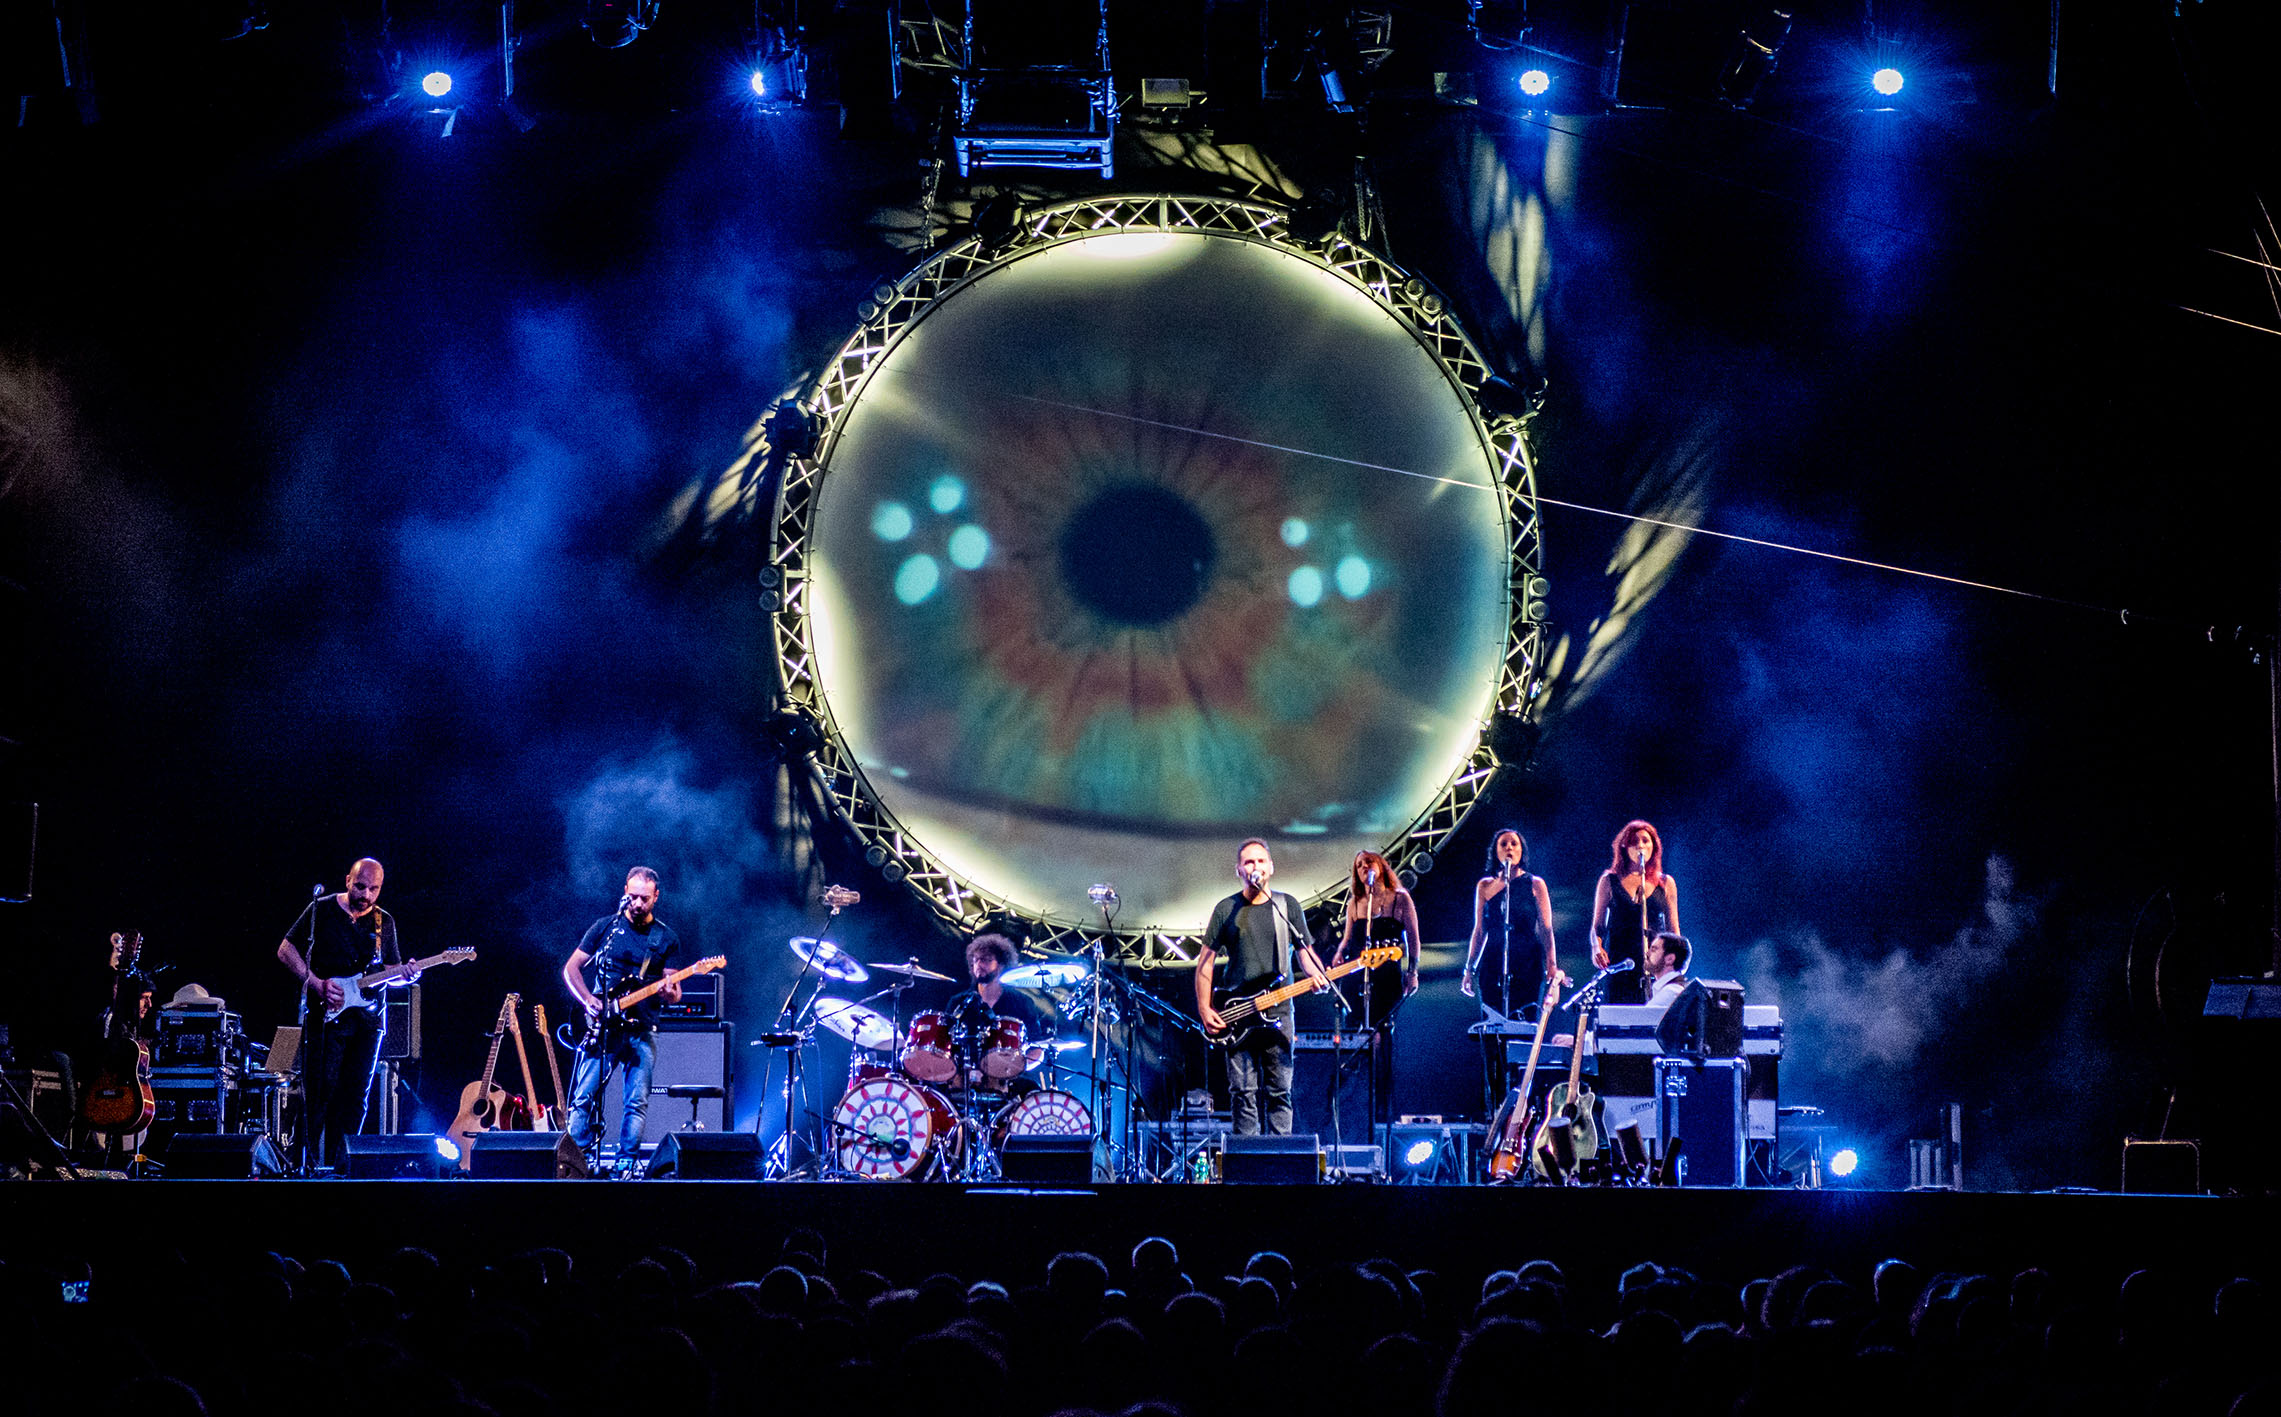 Jesi, 5 giugno, anteprima assoluta del balletto SHINE Pink Floyd Moon